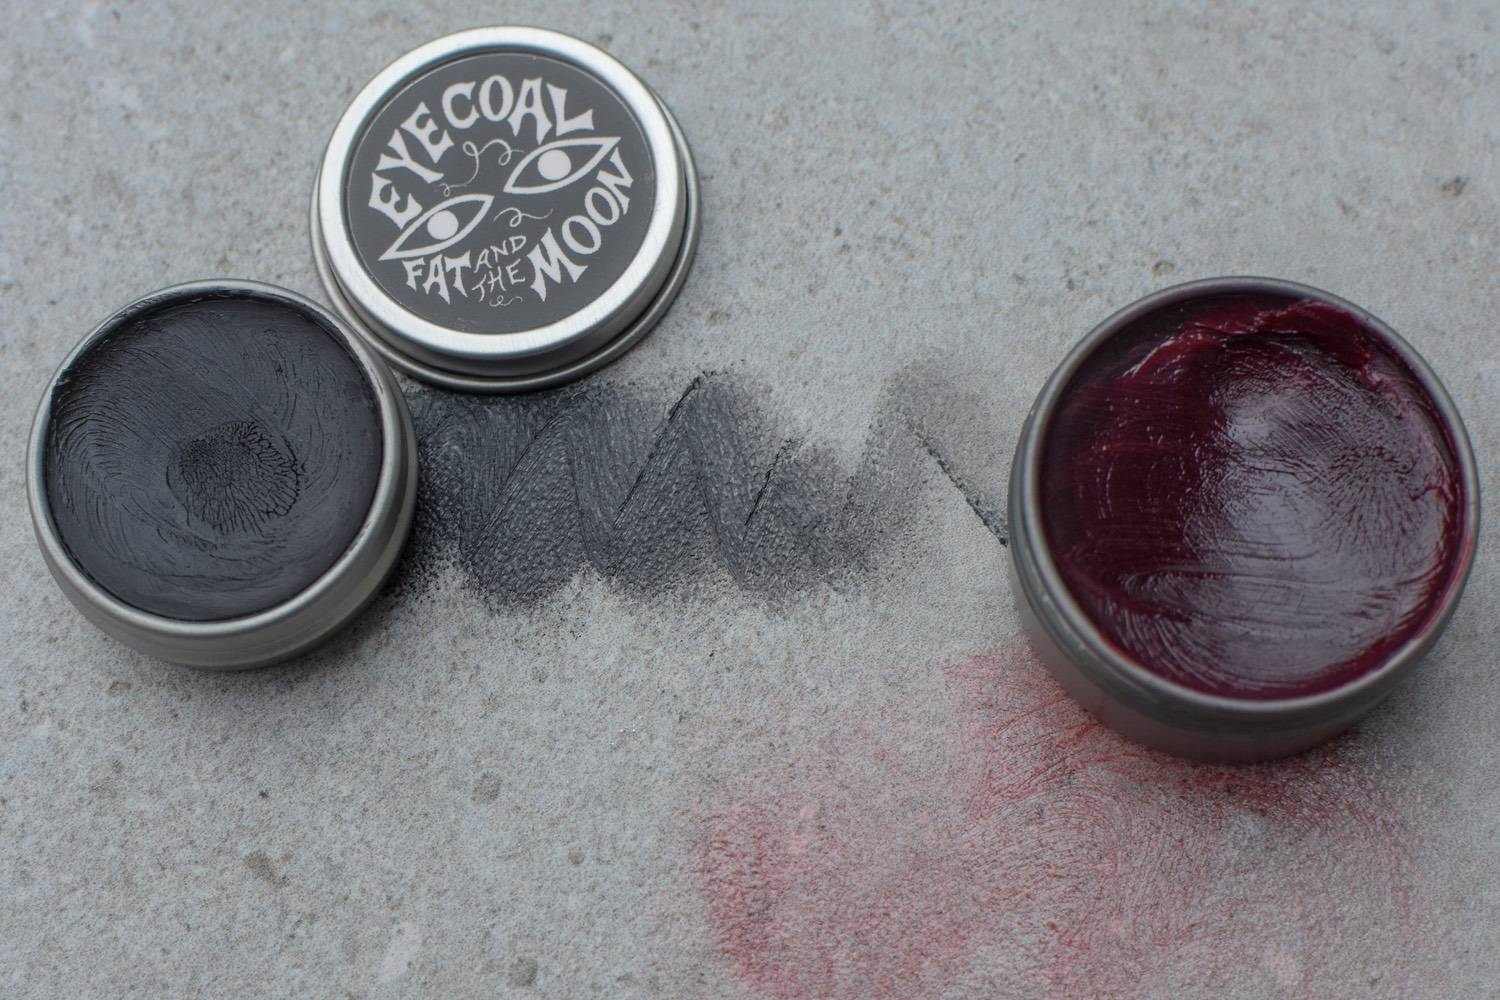 FAT AND THE MOON - Definitely a bit of a weird name, but the products are lovely.Fat and the Moon have perfect little pots of colour for lips and cheeks, as well as dramatic black kohl for eyes, which is now in my make-up essentials bag.The range, which is made with 100% natural ingredients, also includes lovely skincare things too.They are a US brand that you can buy via Etsy, but stocked by a few UK places too.